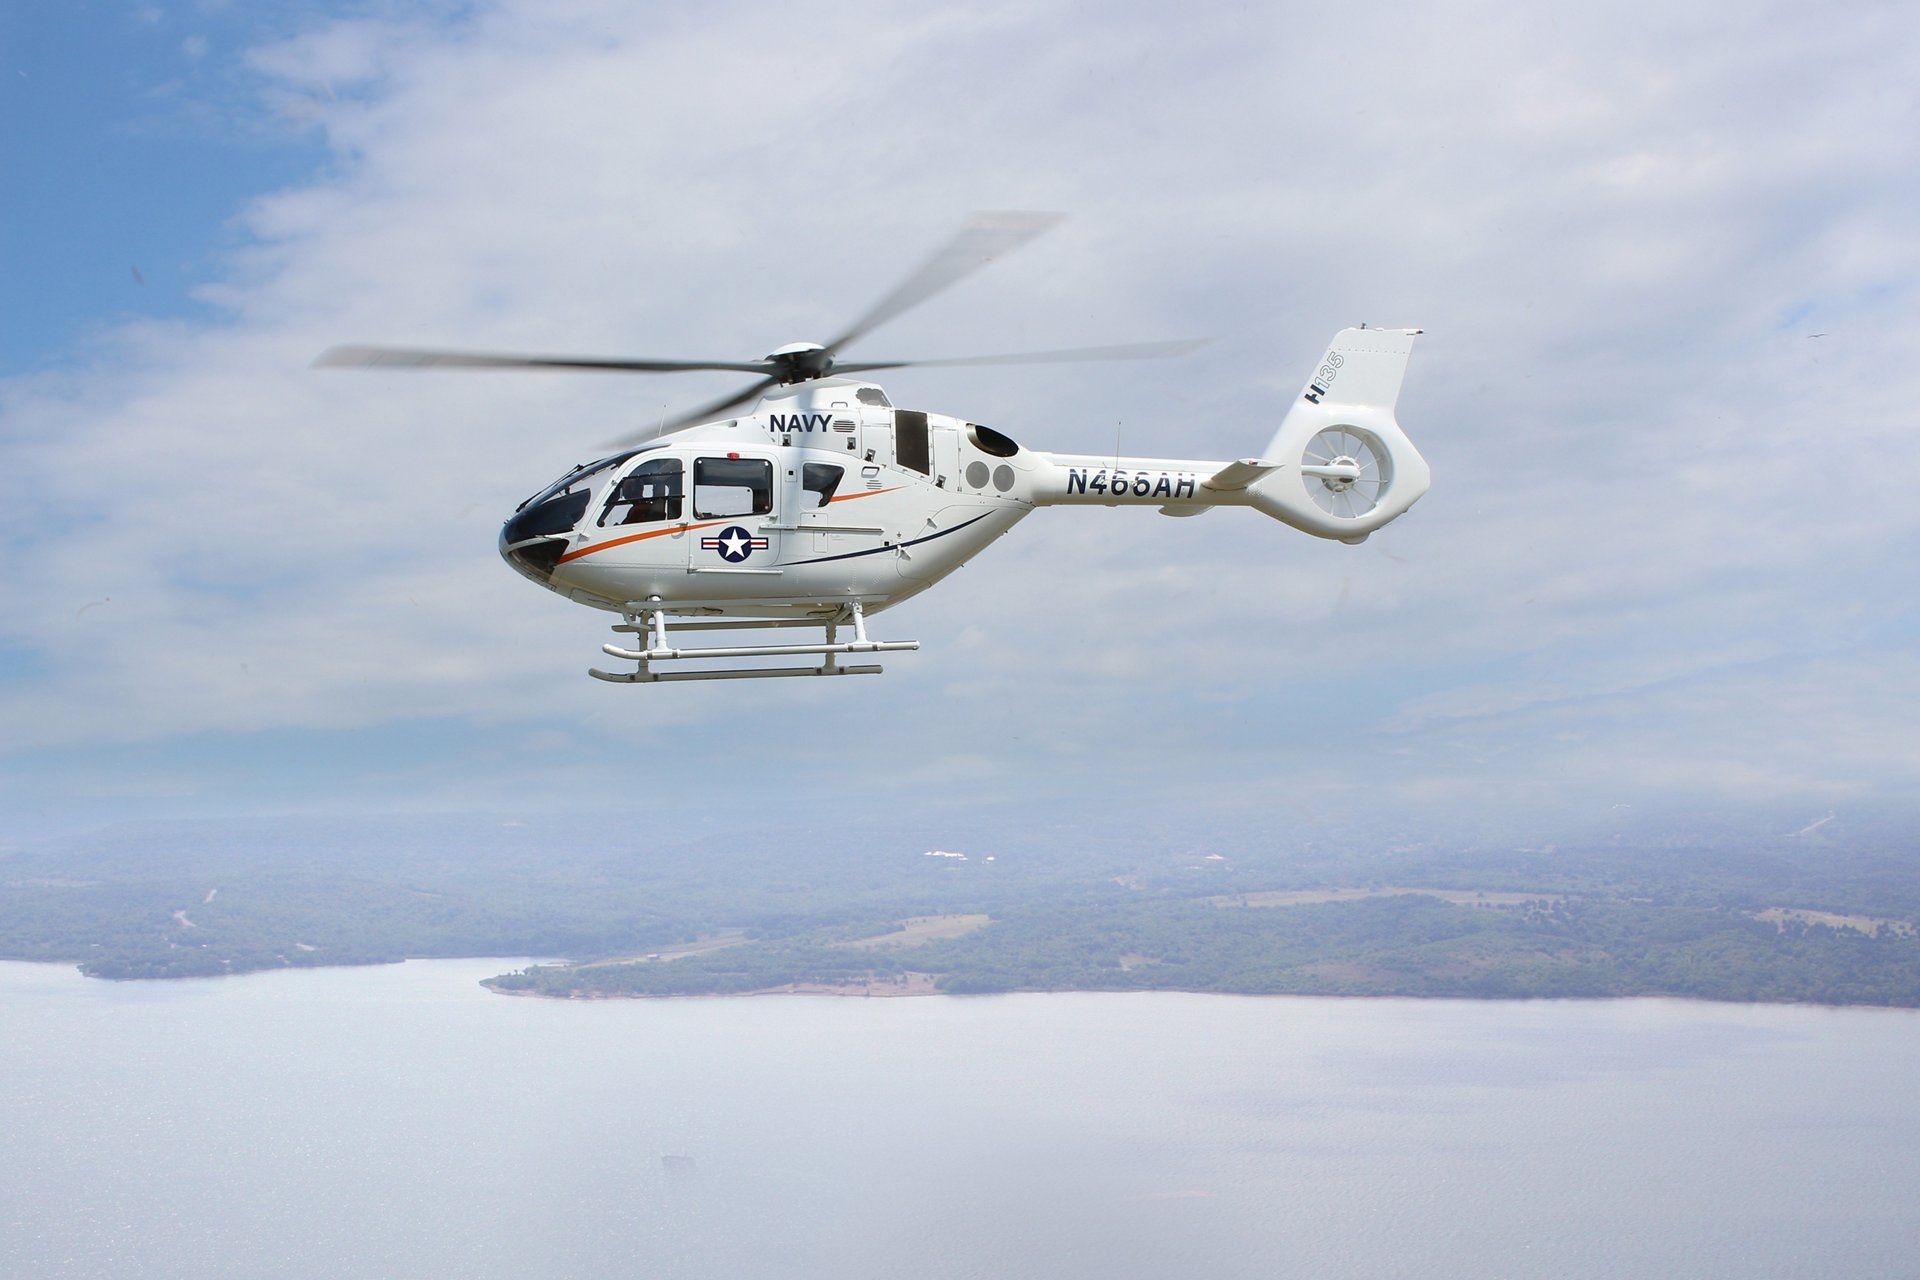 "The H135 is a market leading twin-engine, multi-mission helicopter performing the primary training mission for some of the finest militaries in the world,"" said Chris Emerson, President of Airbus Helicopters Inc. and Head of the North America Region."